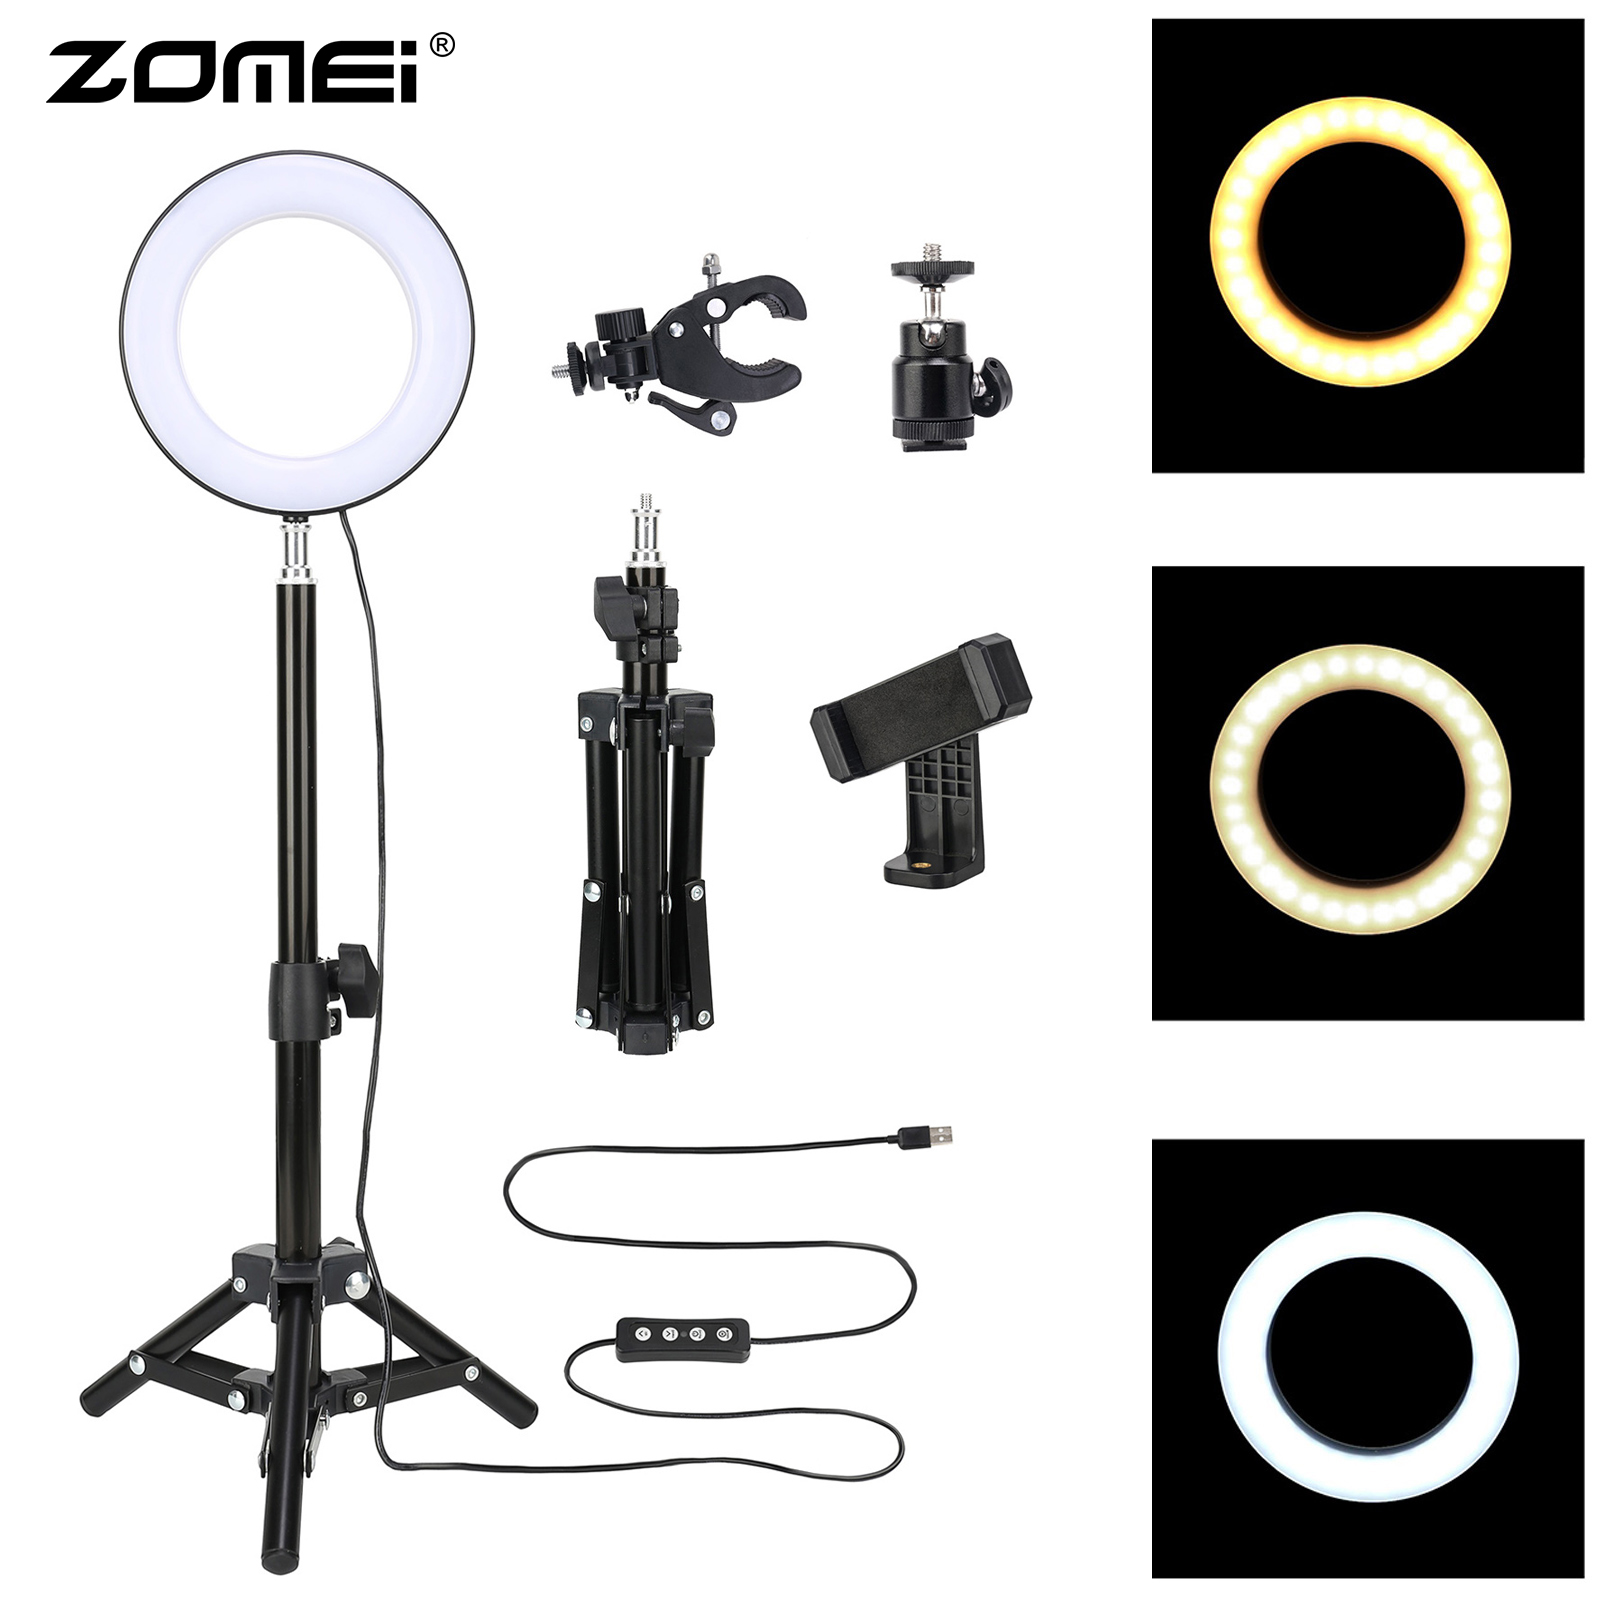 ZOMEI 6 Photography Lighting Dimmable LED Selfie Light Ring Light Youtube Live Video Makeup Photo Studio Light with USB Plug